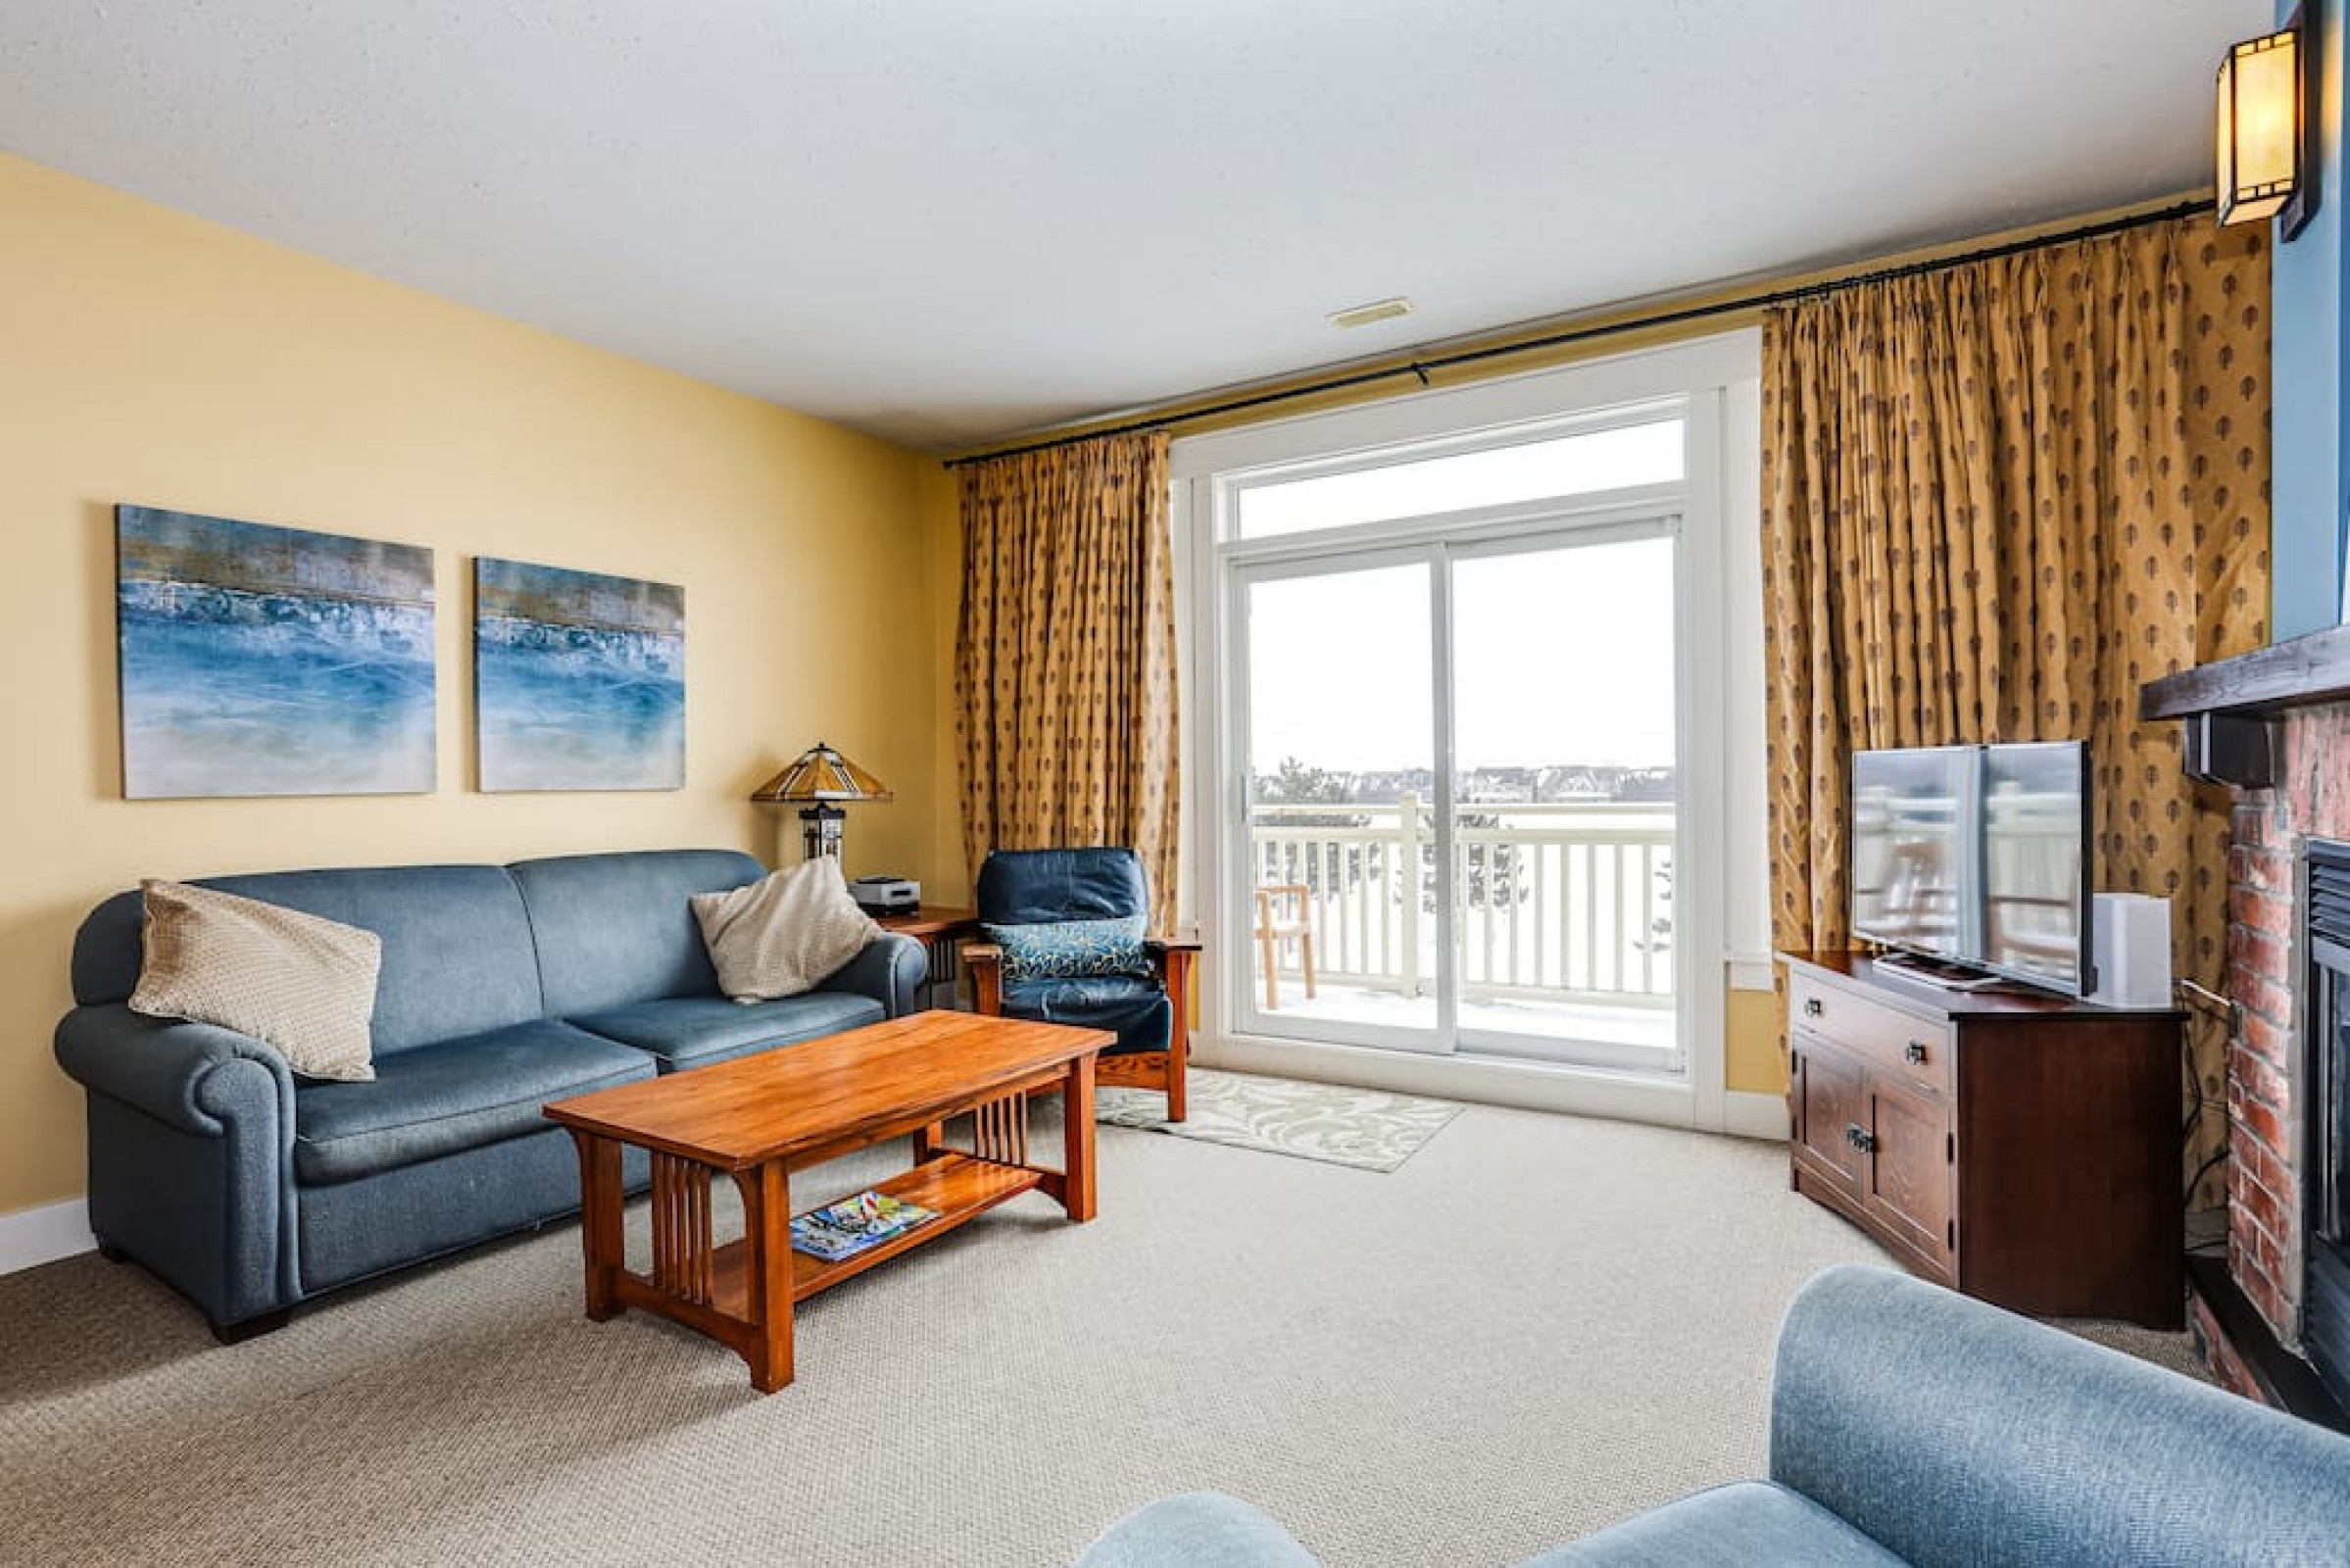 2 Bedroom Rivergrass with a View (81282)